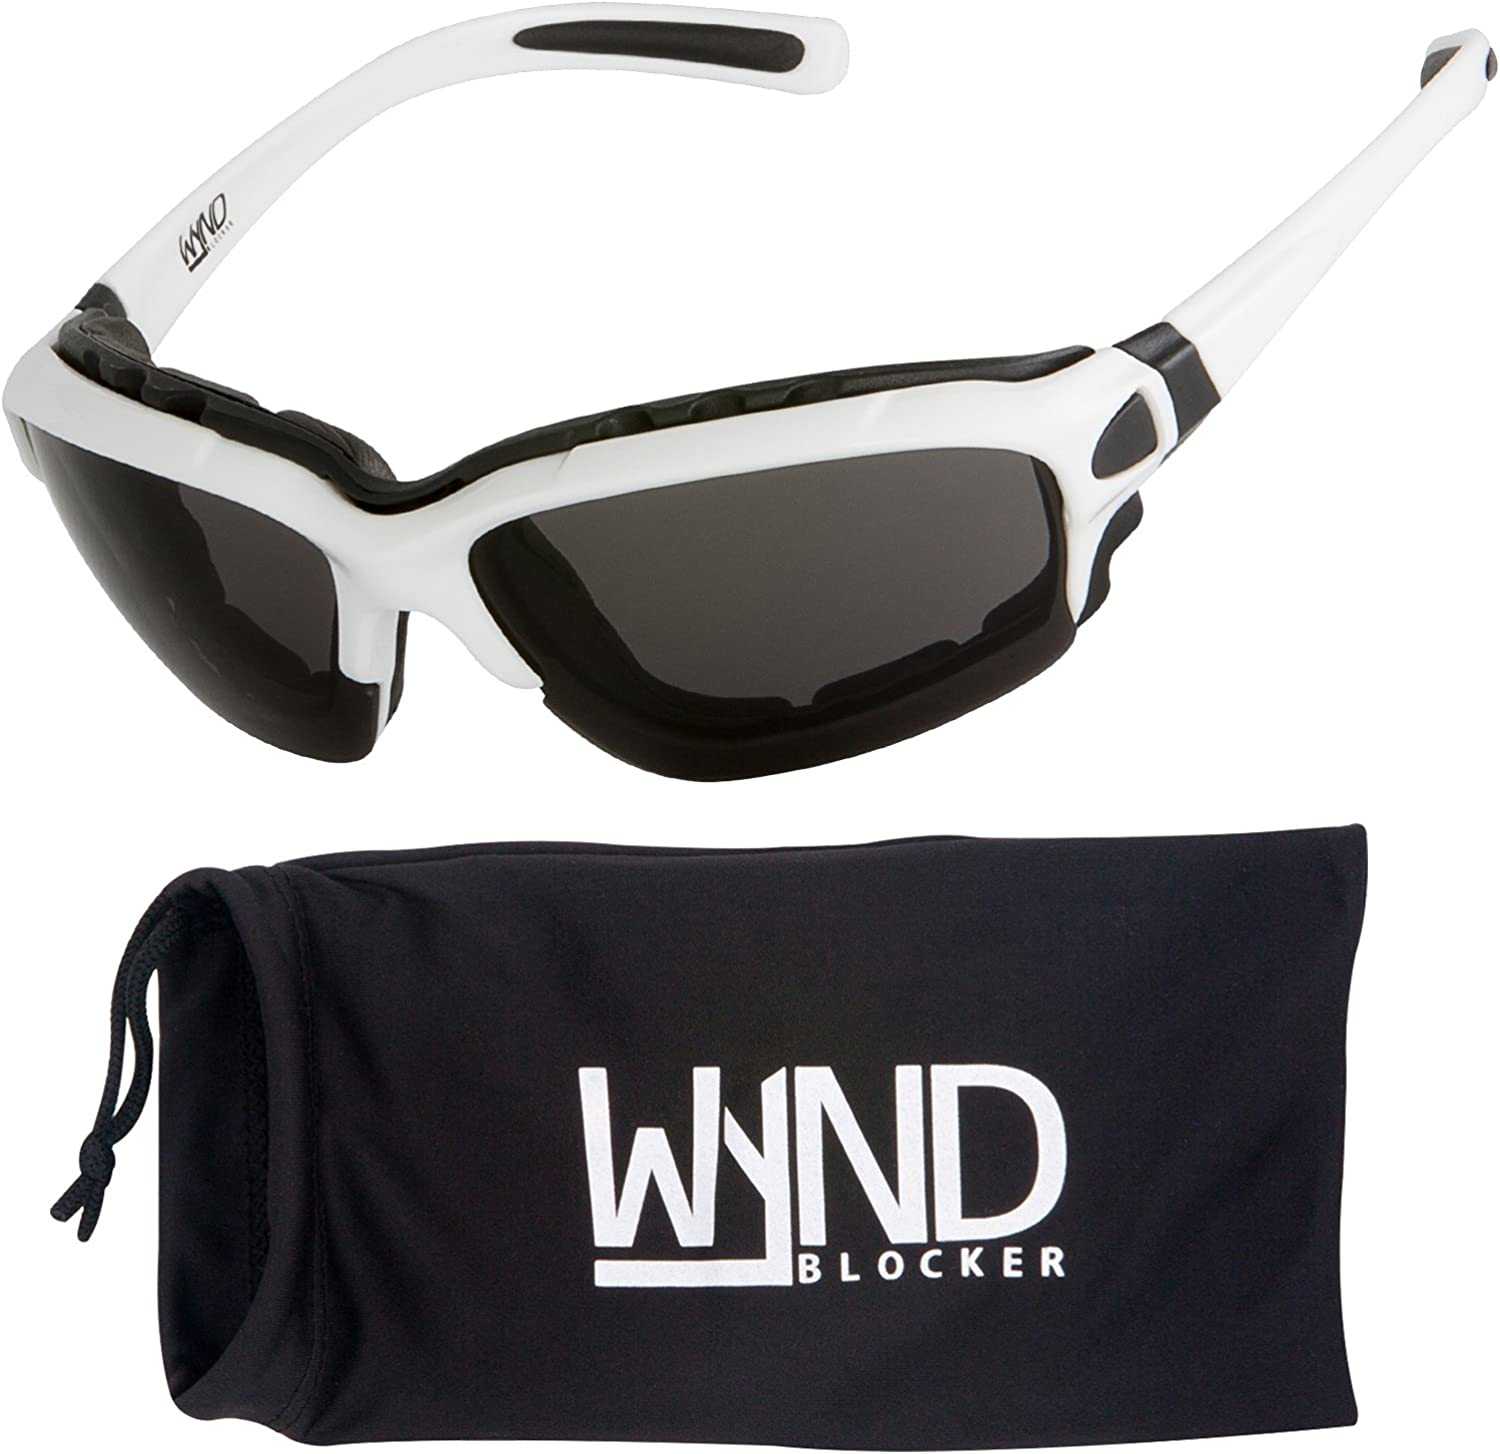 WYND Blocker Motorcycle Riding Glasses Extreme Sports Wrap Sunglasses